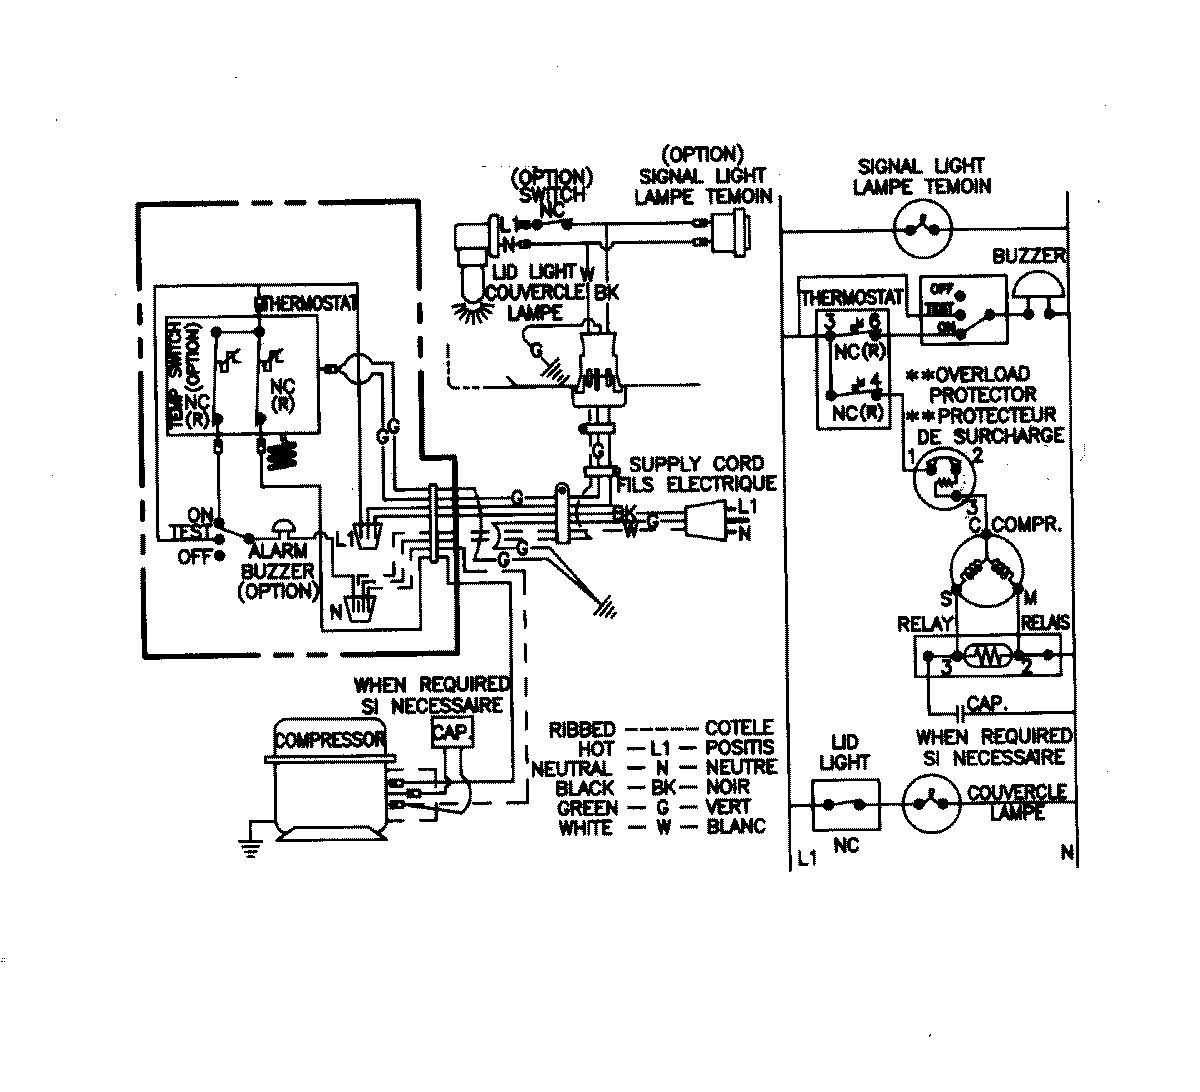 Schematic Oven Wiring Ge Jbp24g0n1ad - 1961 Ford F100 Wiring Diagram For  Color - source-auto3.gotoscool.jeanjaures37.fr | Ge Thermostat Wiring Diagram Free Picture Schematic |  | Wiring Diagram Resource